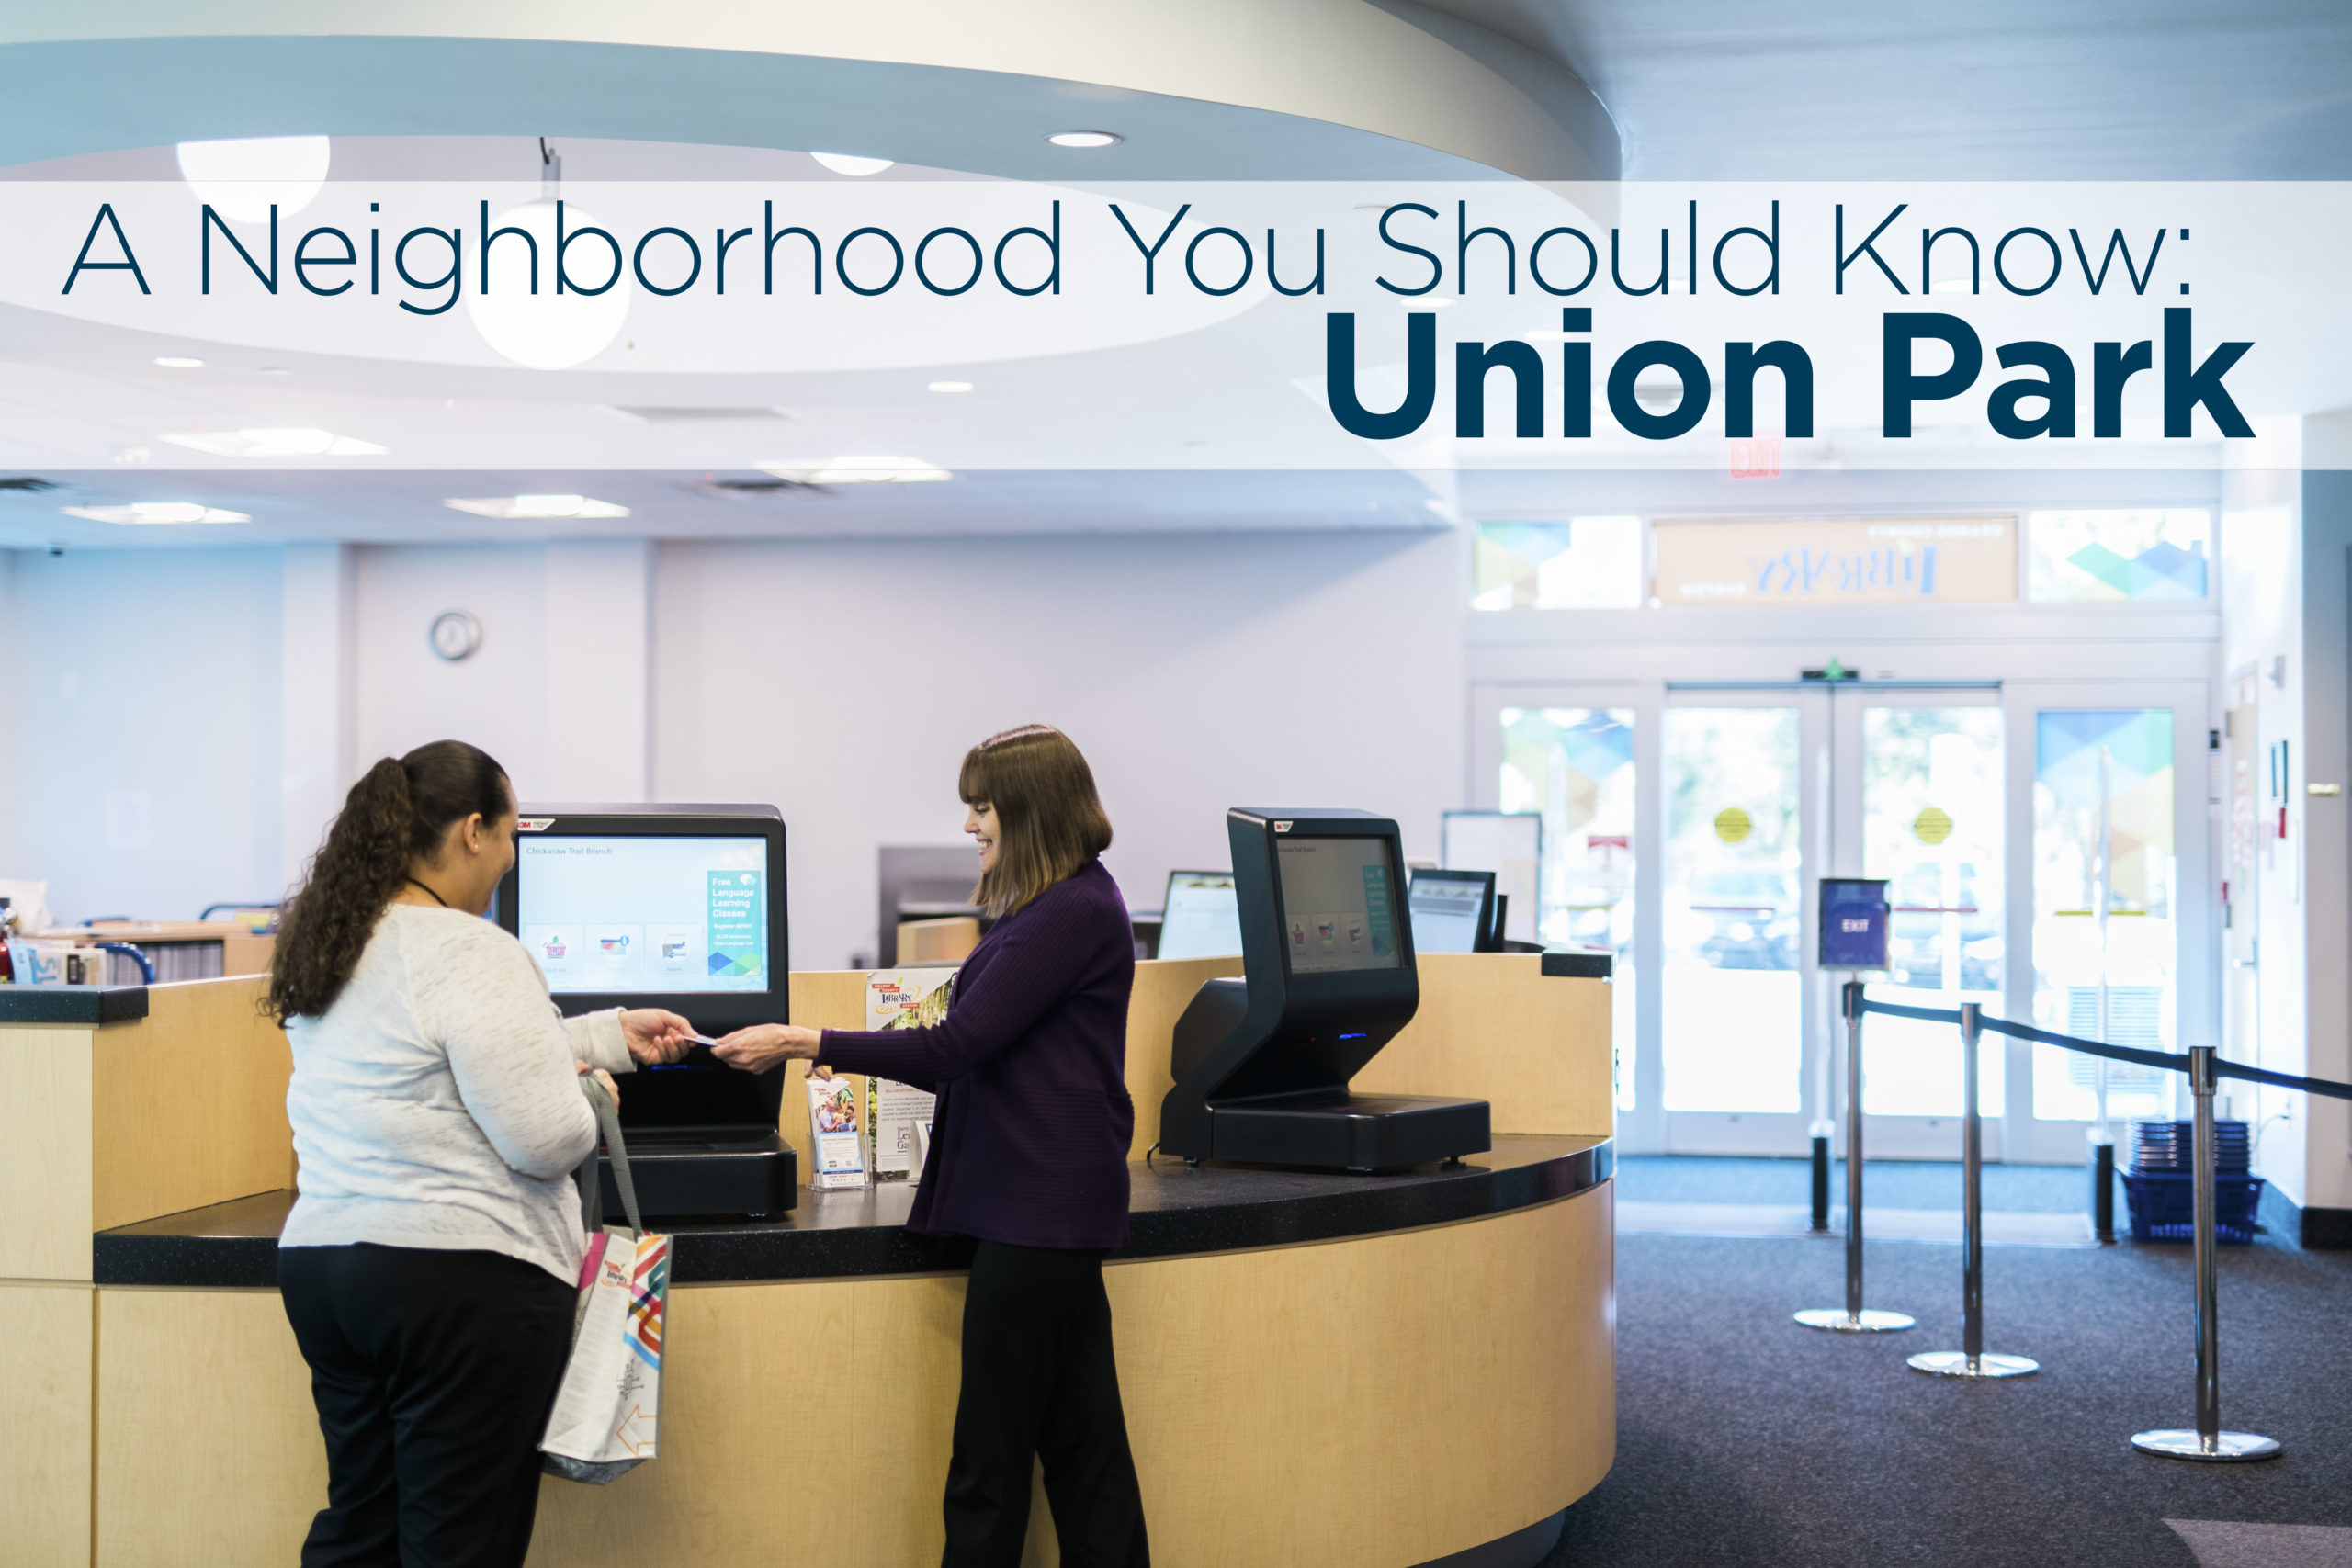 Librarian at the Chickasaw branch library. Text: A Neighborhood You Should Know: Union Park